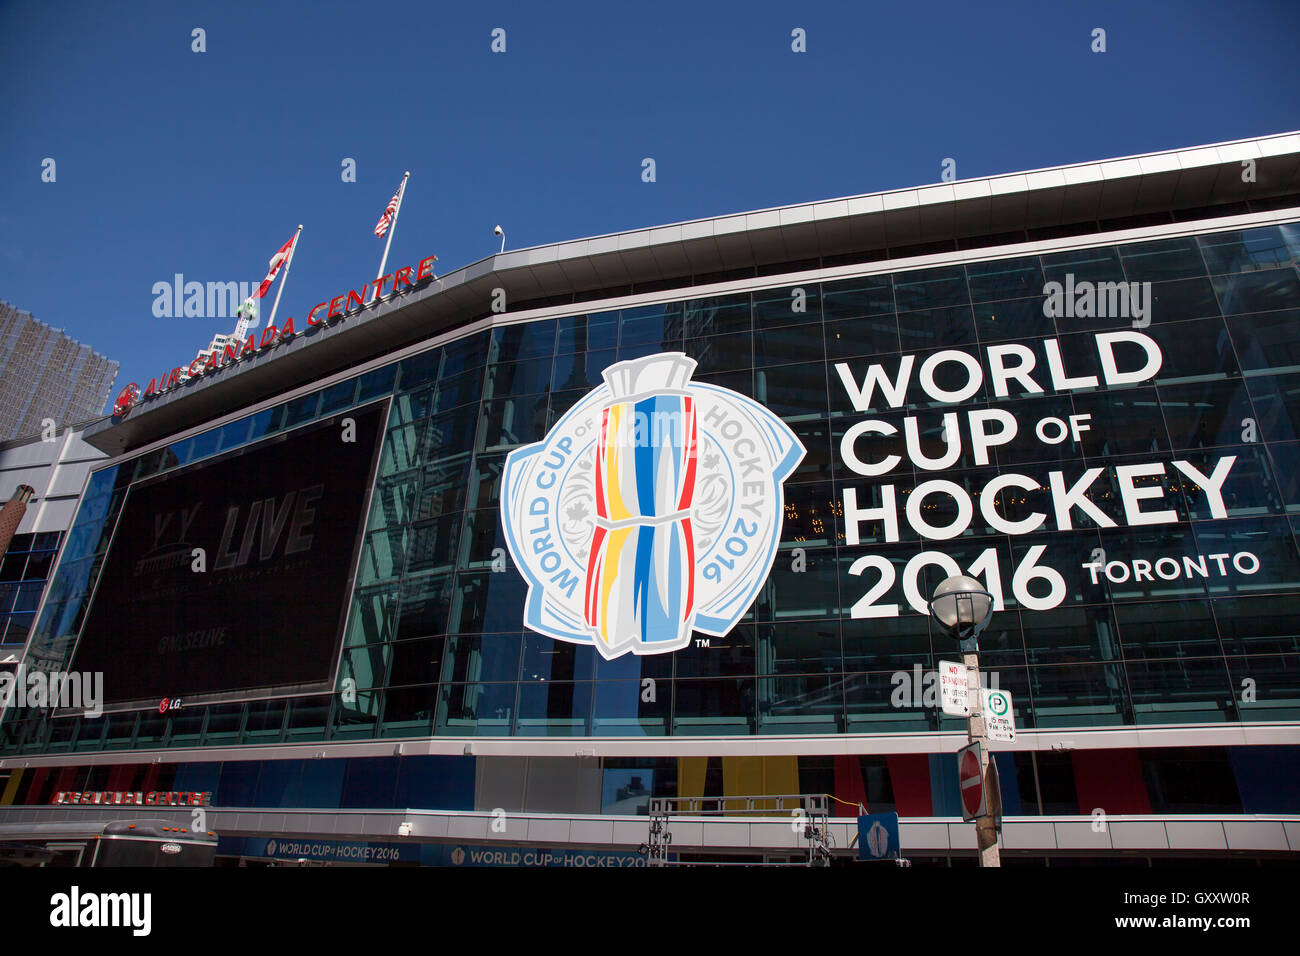 TORONTO - SEPTEMBER 15, 2016: The Air Canada Centre in Toronto is hosting the World Cup of Hockey 2016 tournament. - Stock Image